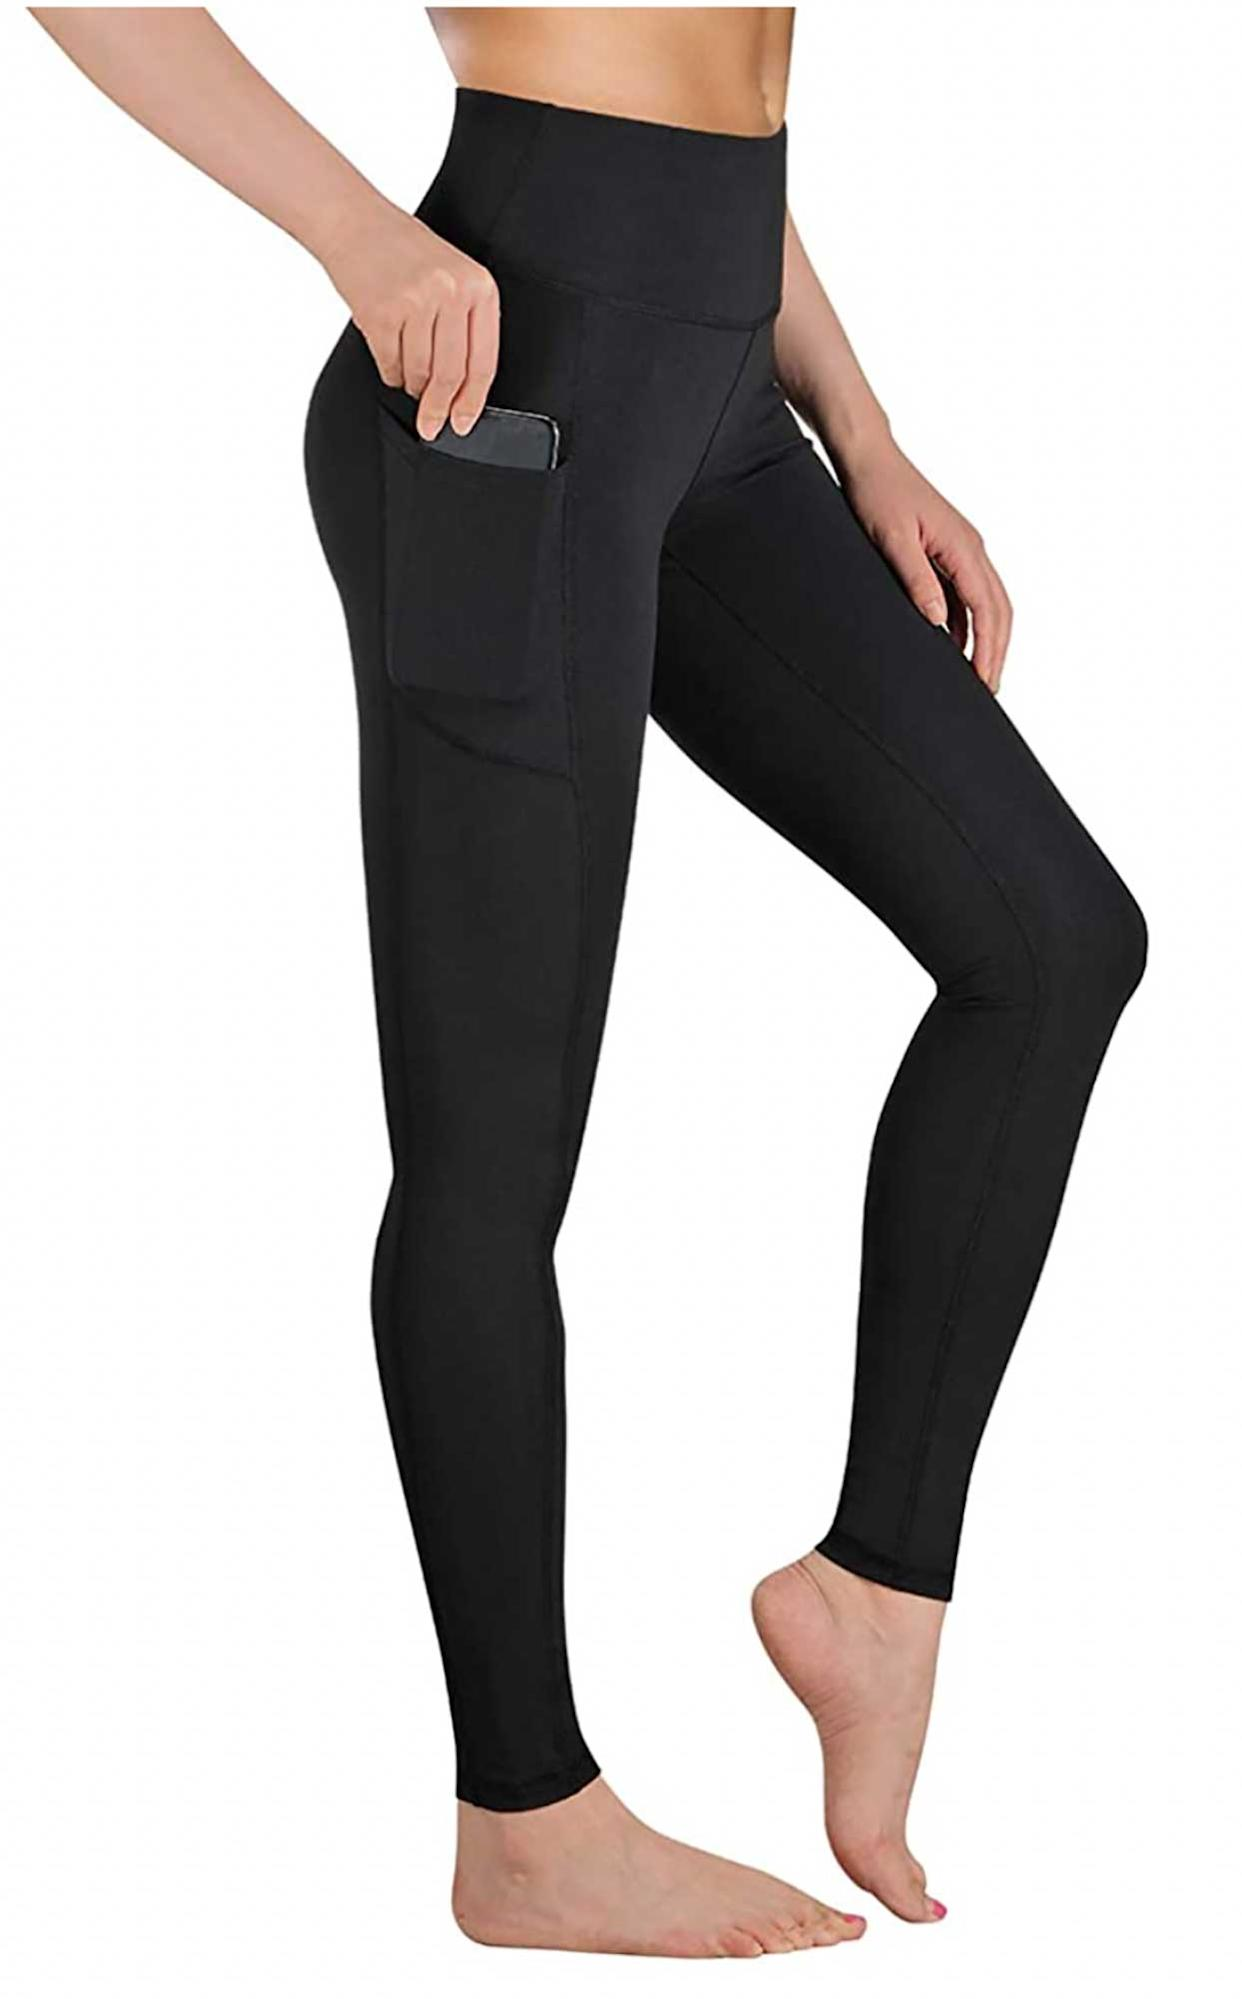 High Waist Workout Leggings with Pockets and Tummy Control